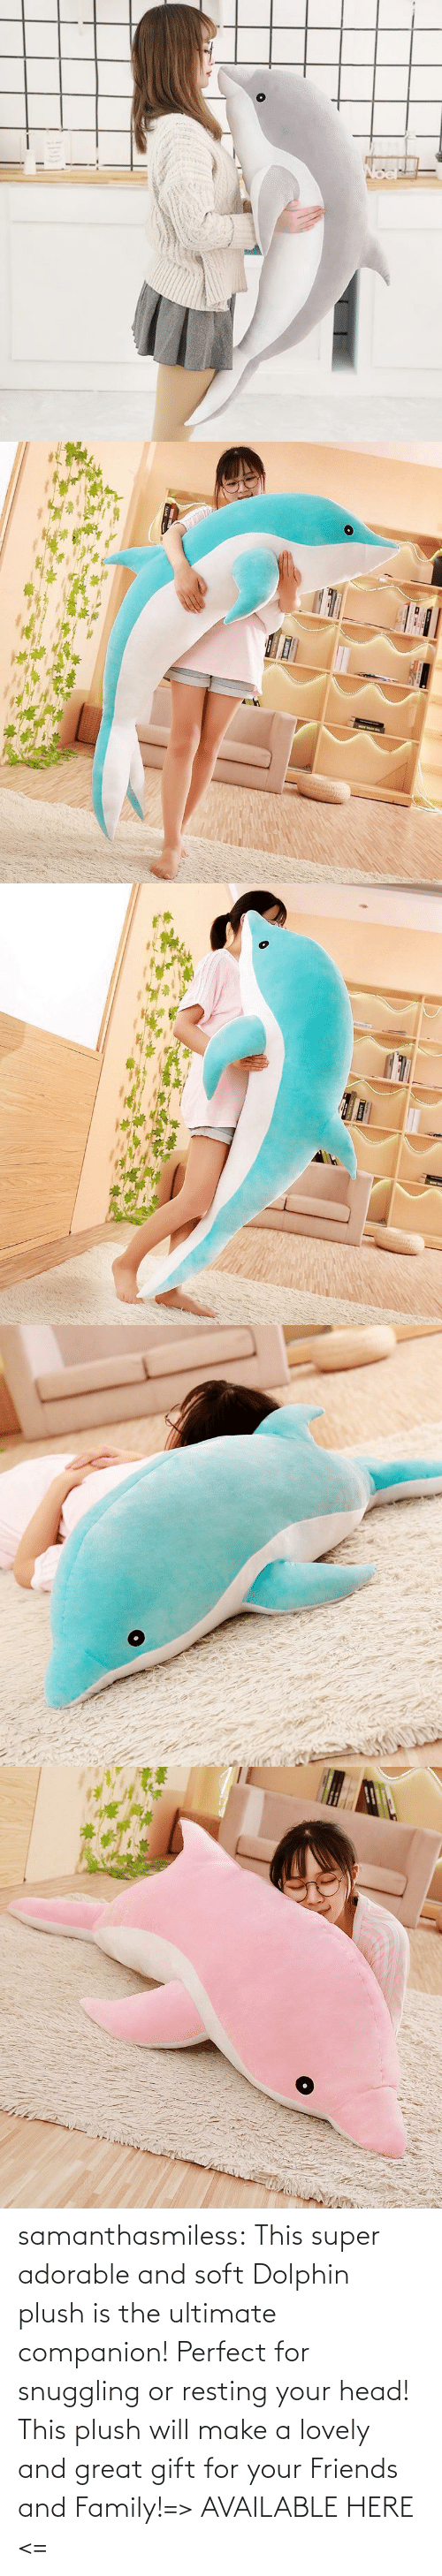 family: samanthasmiless:  This super adorable and soft Dolphin plush is the ultimate companion! Perfect for snuggling or resting your head! This plush will make a lovely and great gift for your Friends and Family!=> AVAILABLE HERE <=